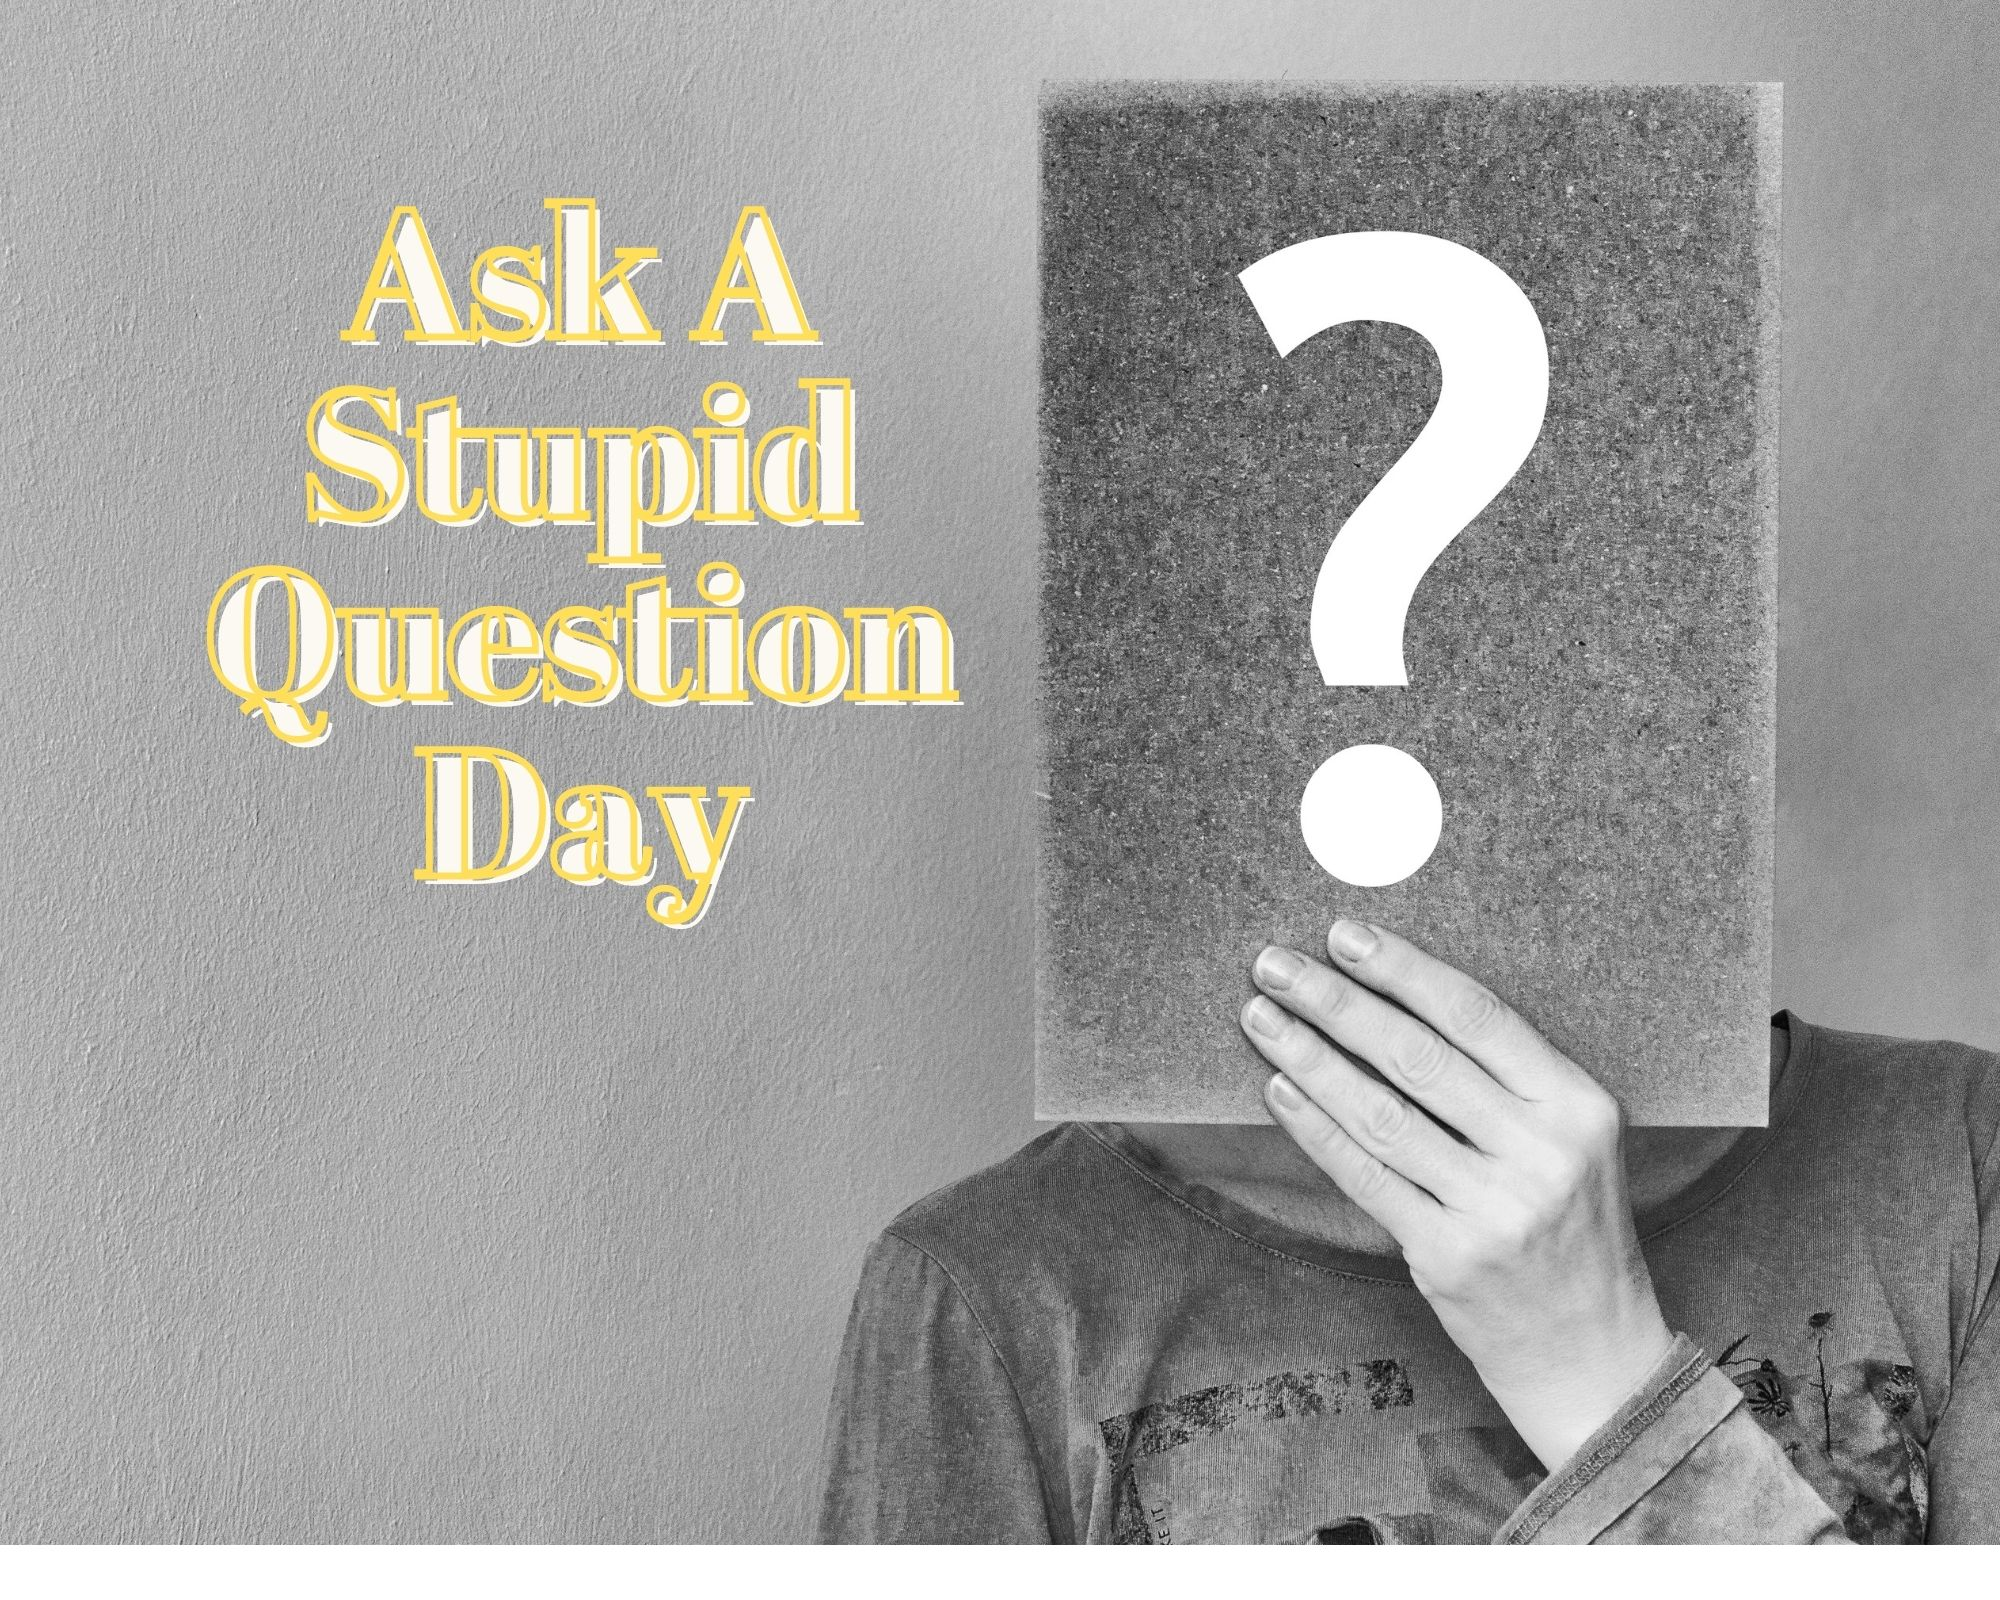 Ask A Stupid Question Day